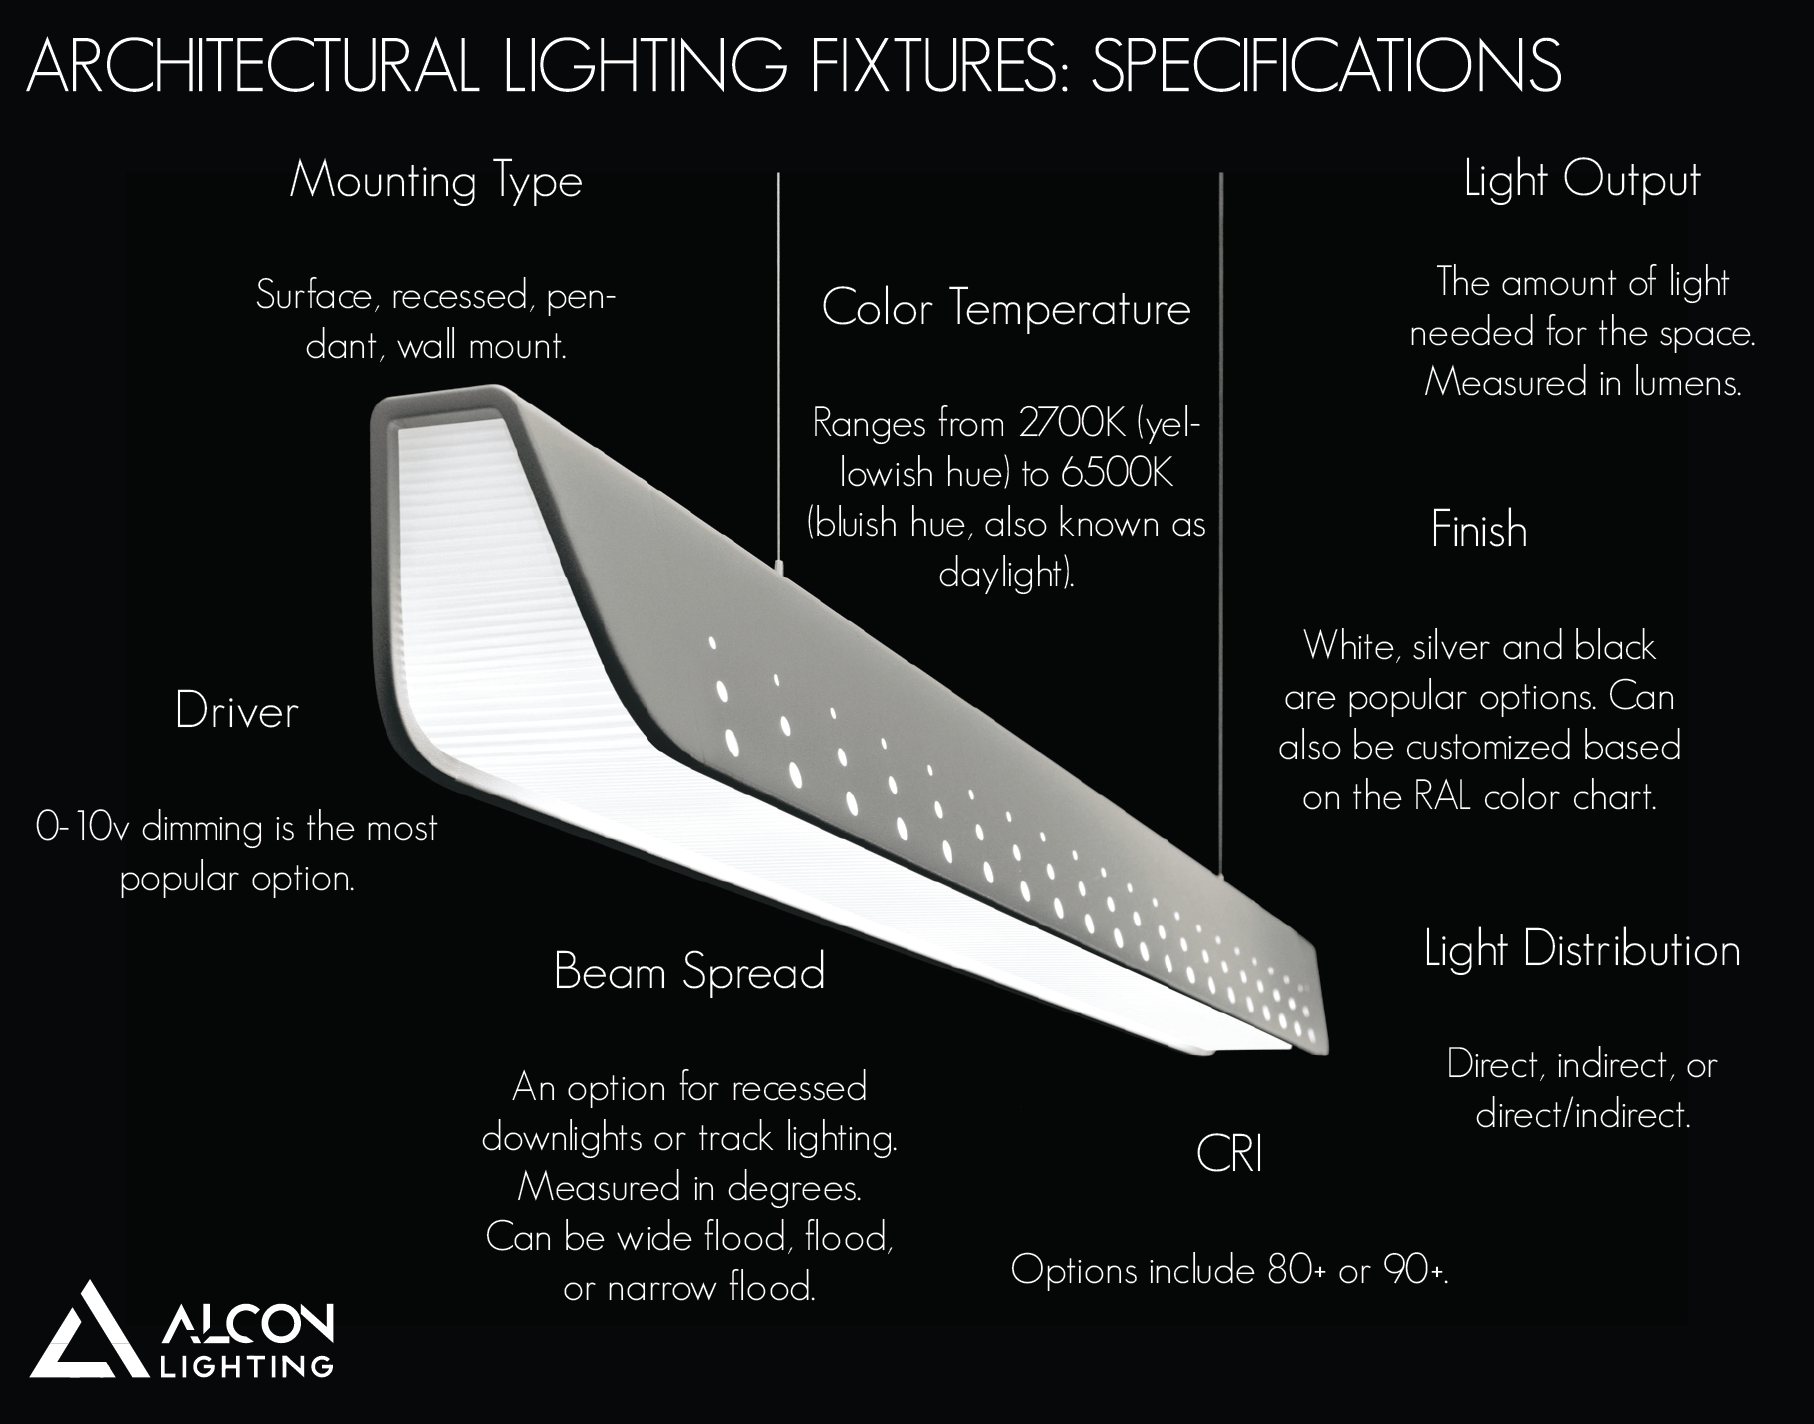 Lighting Fixtures Specifications